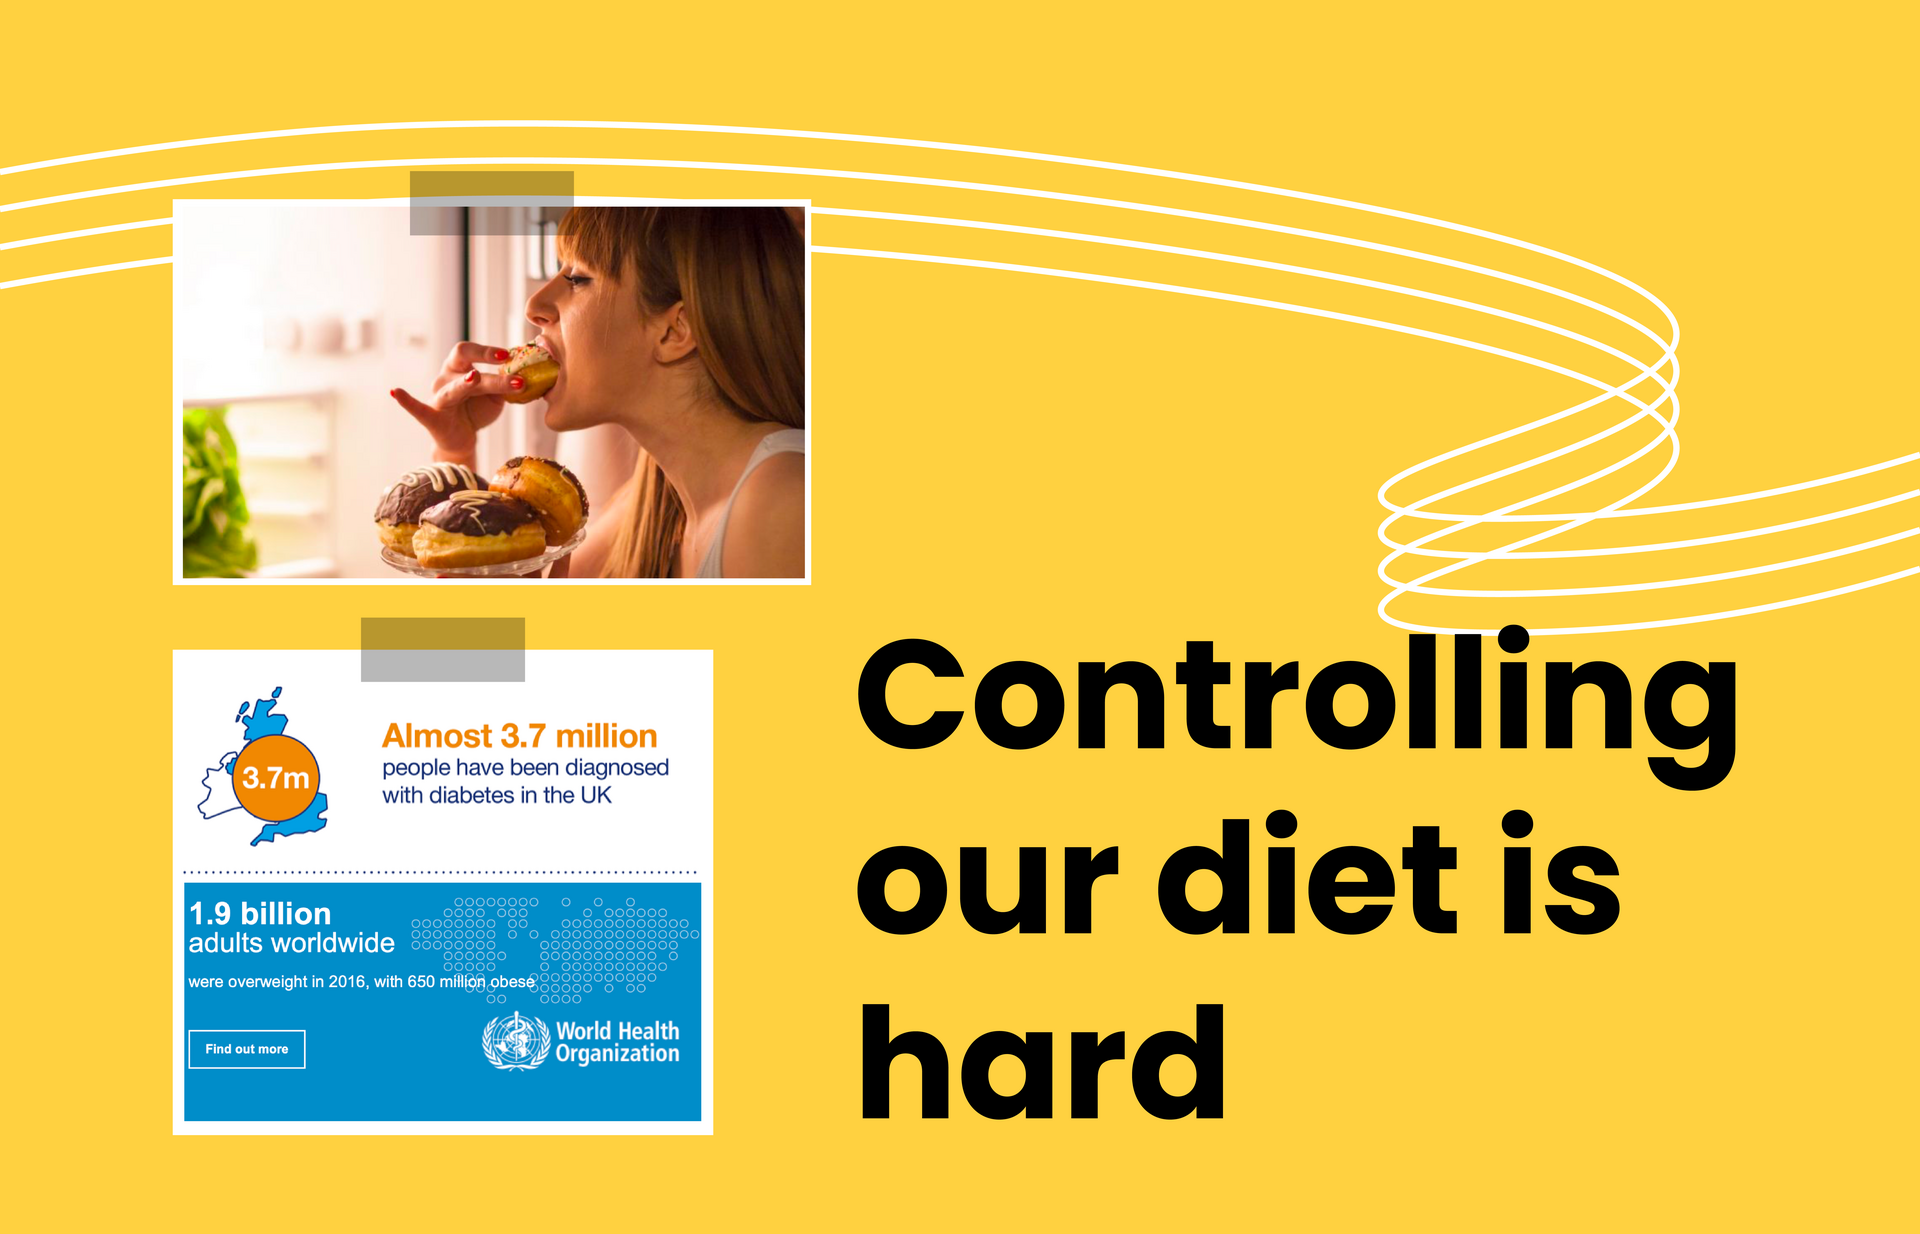 Lifestyle diseases and problems of dieting